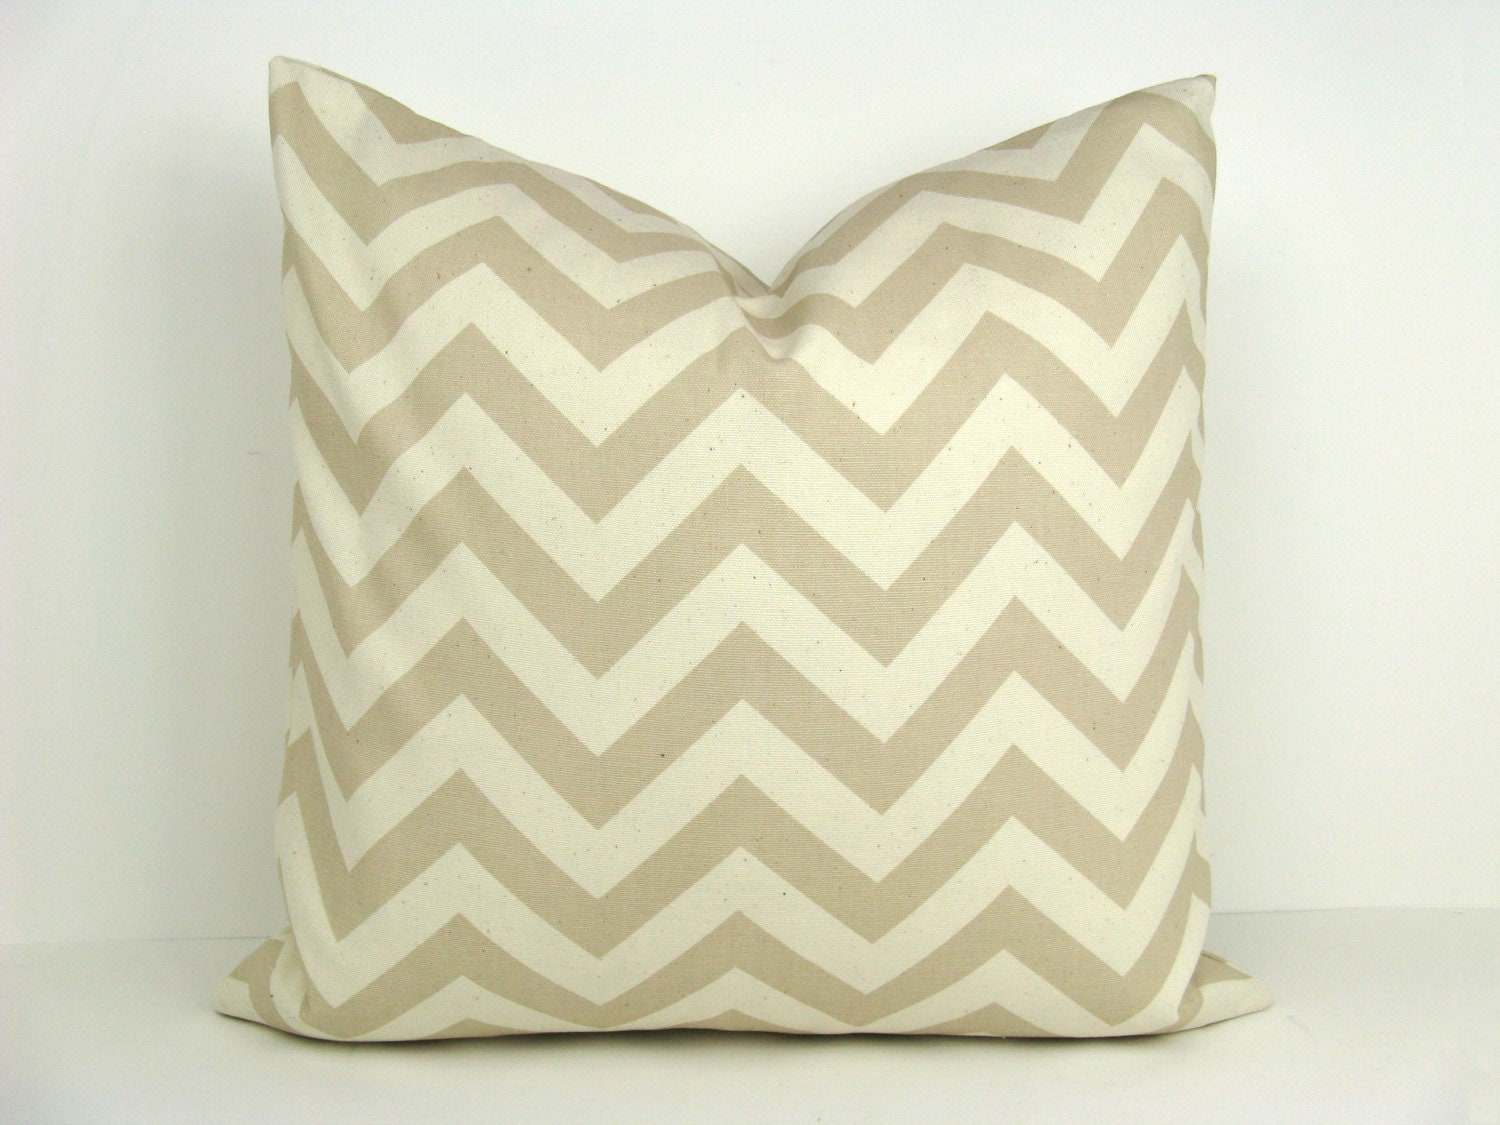 Decorative Pillows Euro : Decorative Throw Pillows Euro Size Tan and Cream by EastAndNest